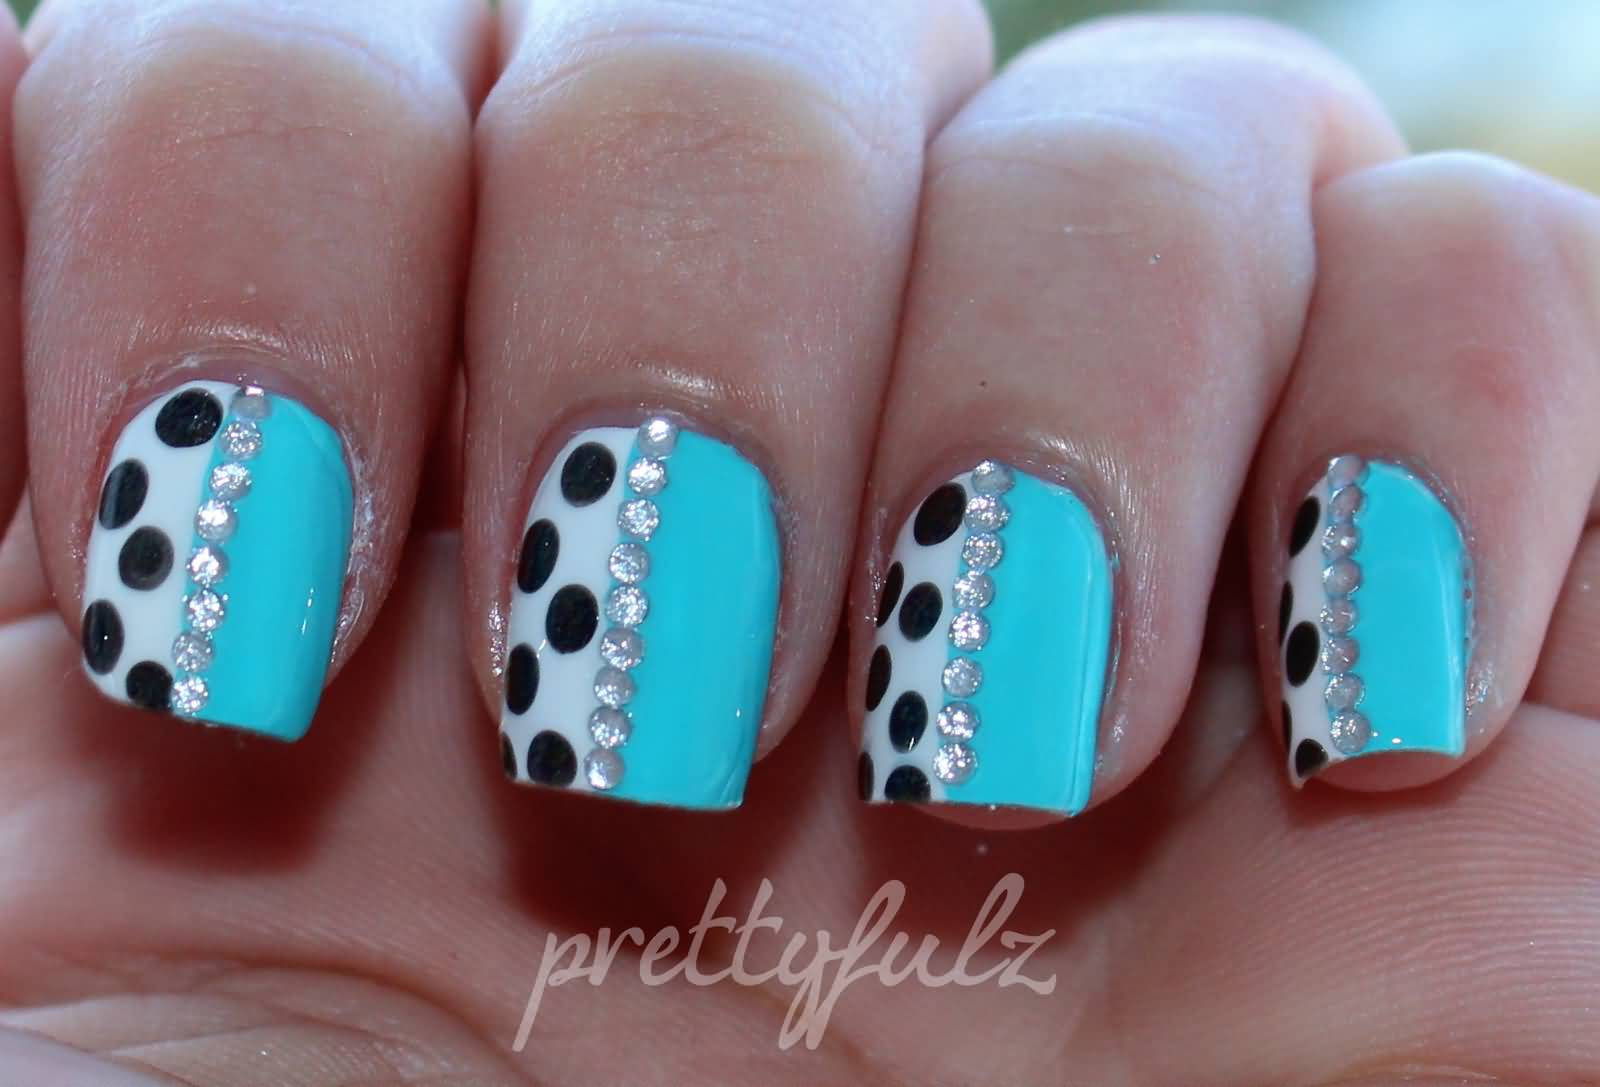 50 best blue nail art design ideas half blue with black and white polka dots nail art prinsesfo Images